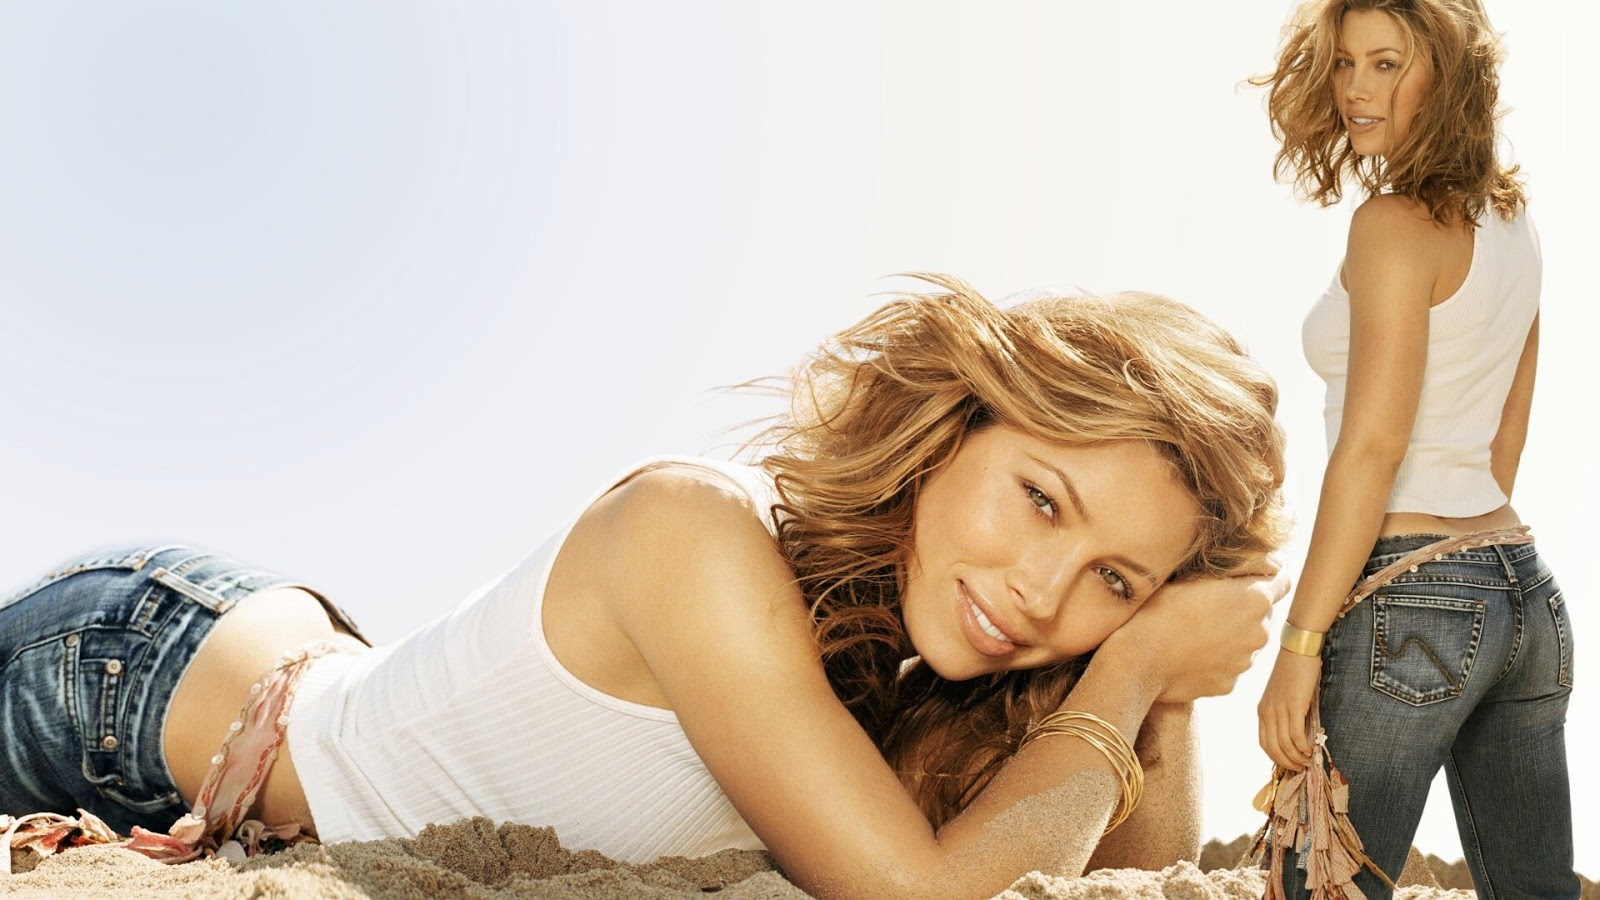 jessica biel background - photo #13